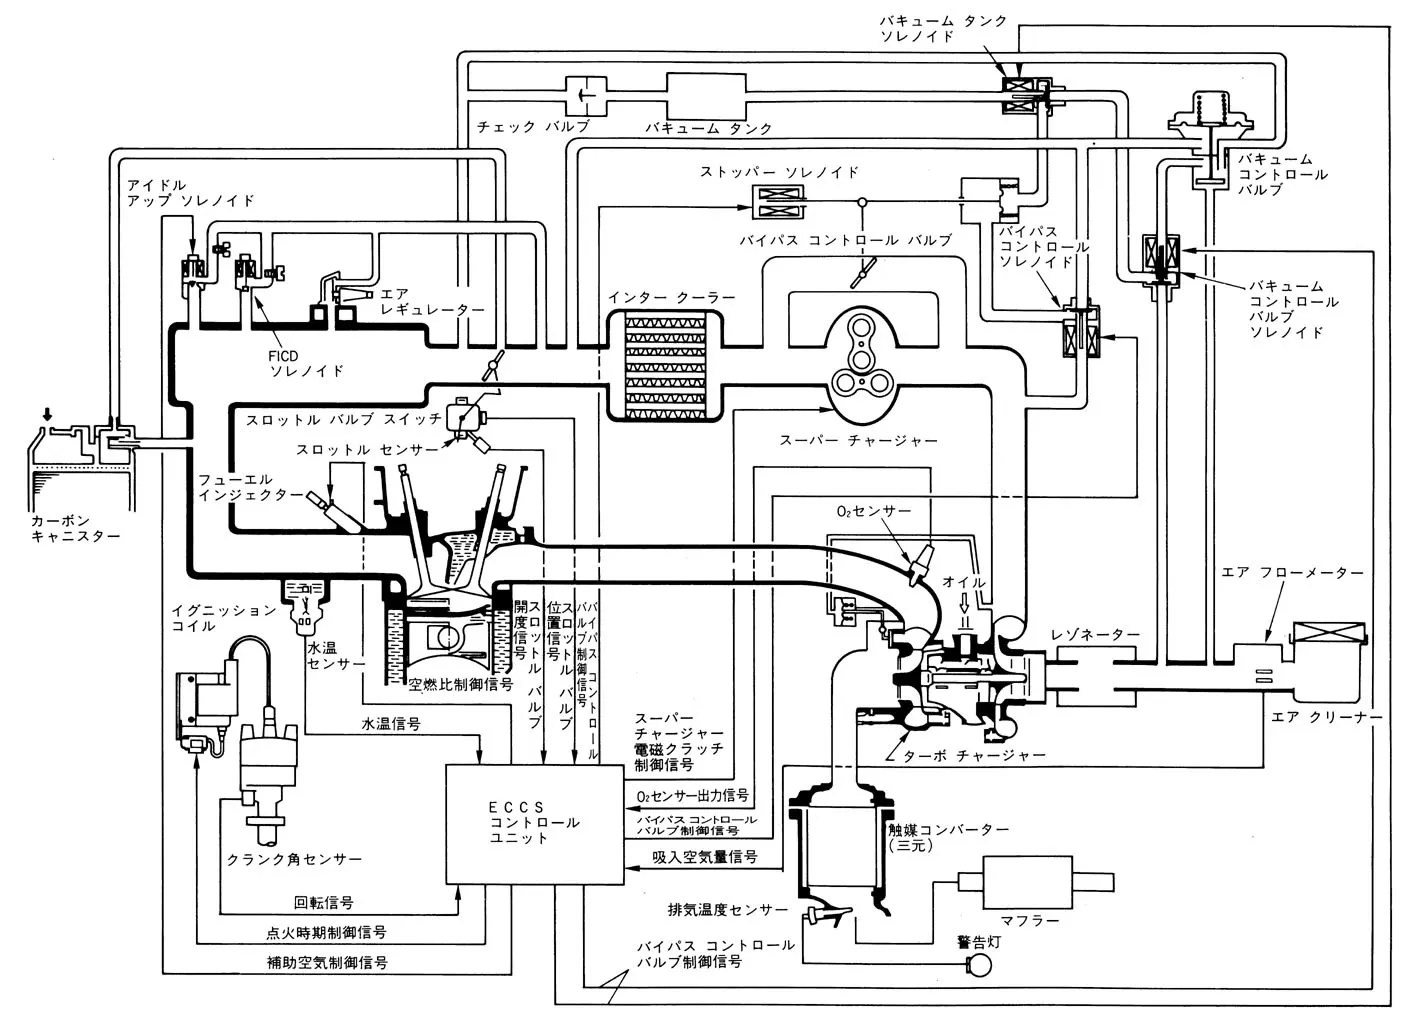 2001 Hyundai Xg300 Engine Diagram • Wiring And Engine Diagram